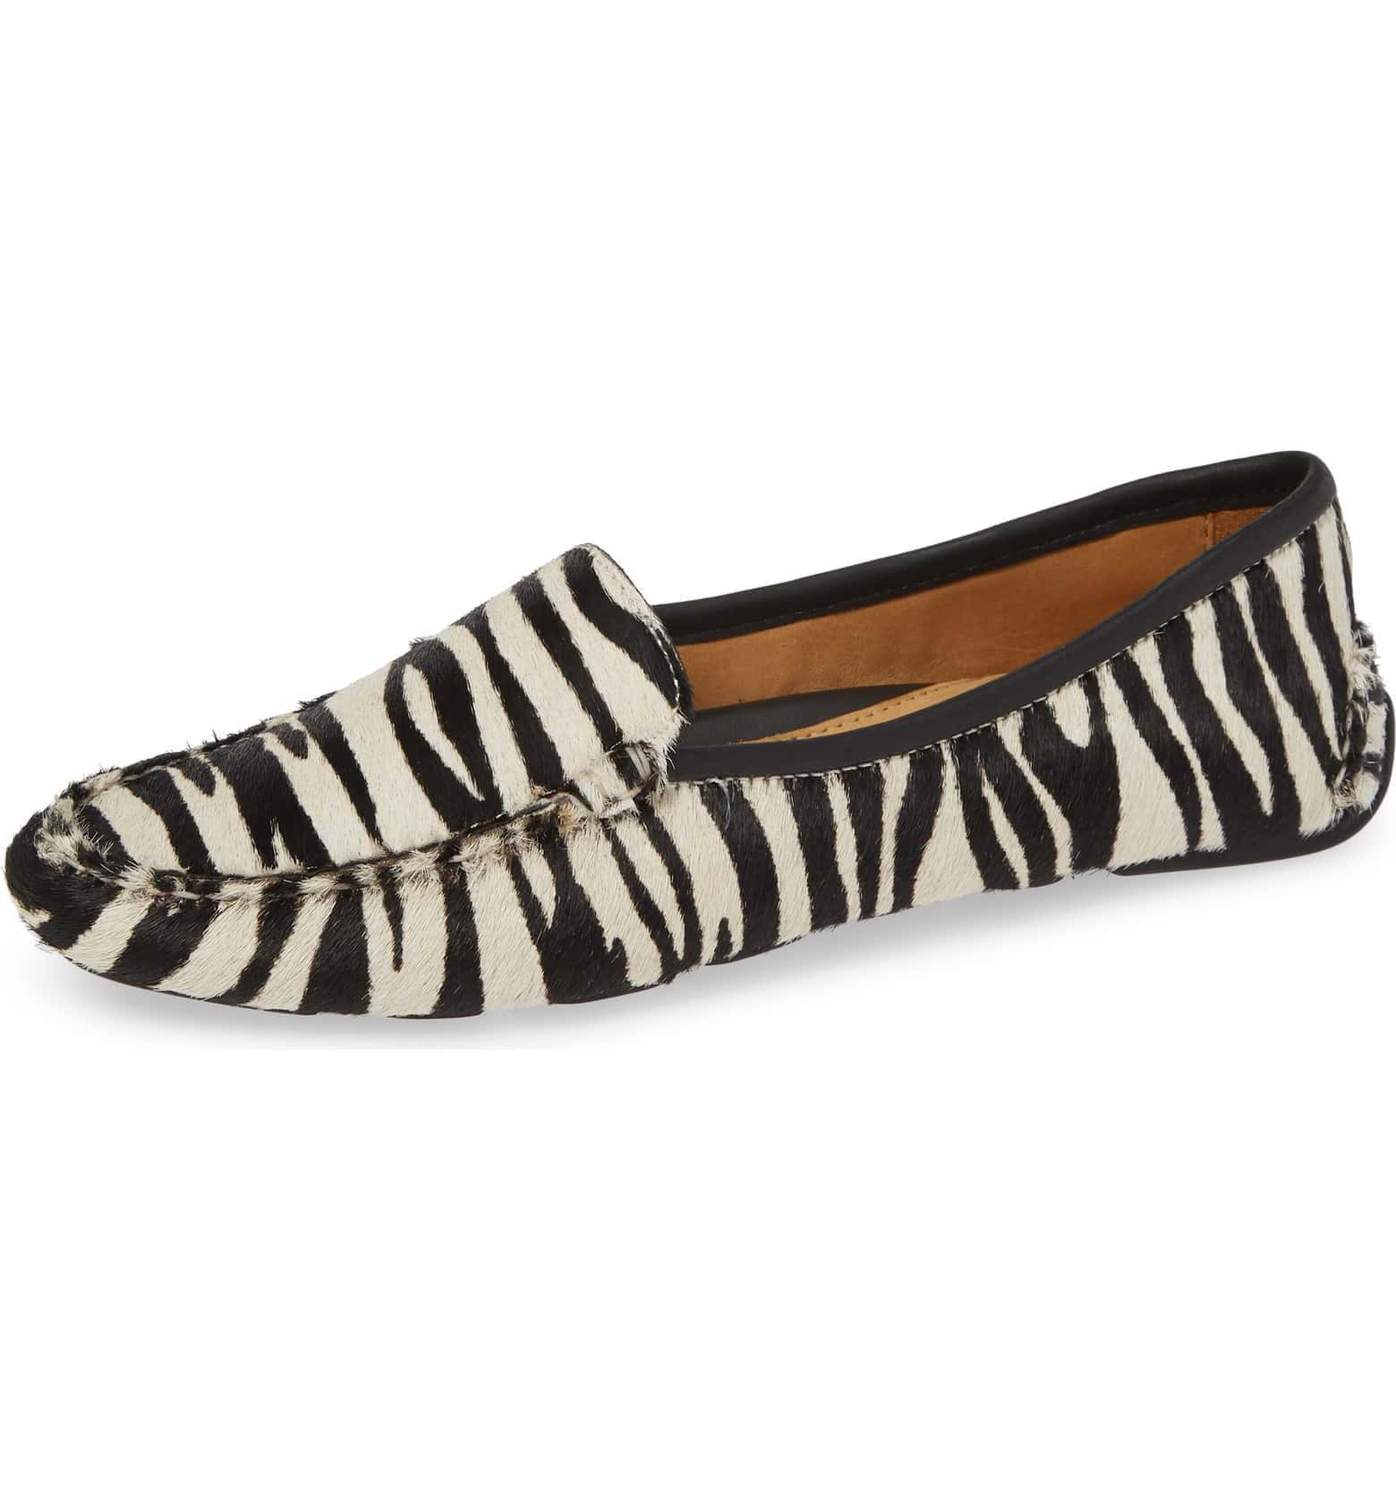 Womens Zebra Haircalf Jillian Driving Moccasin